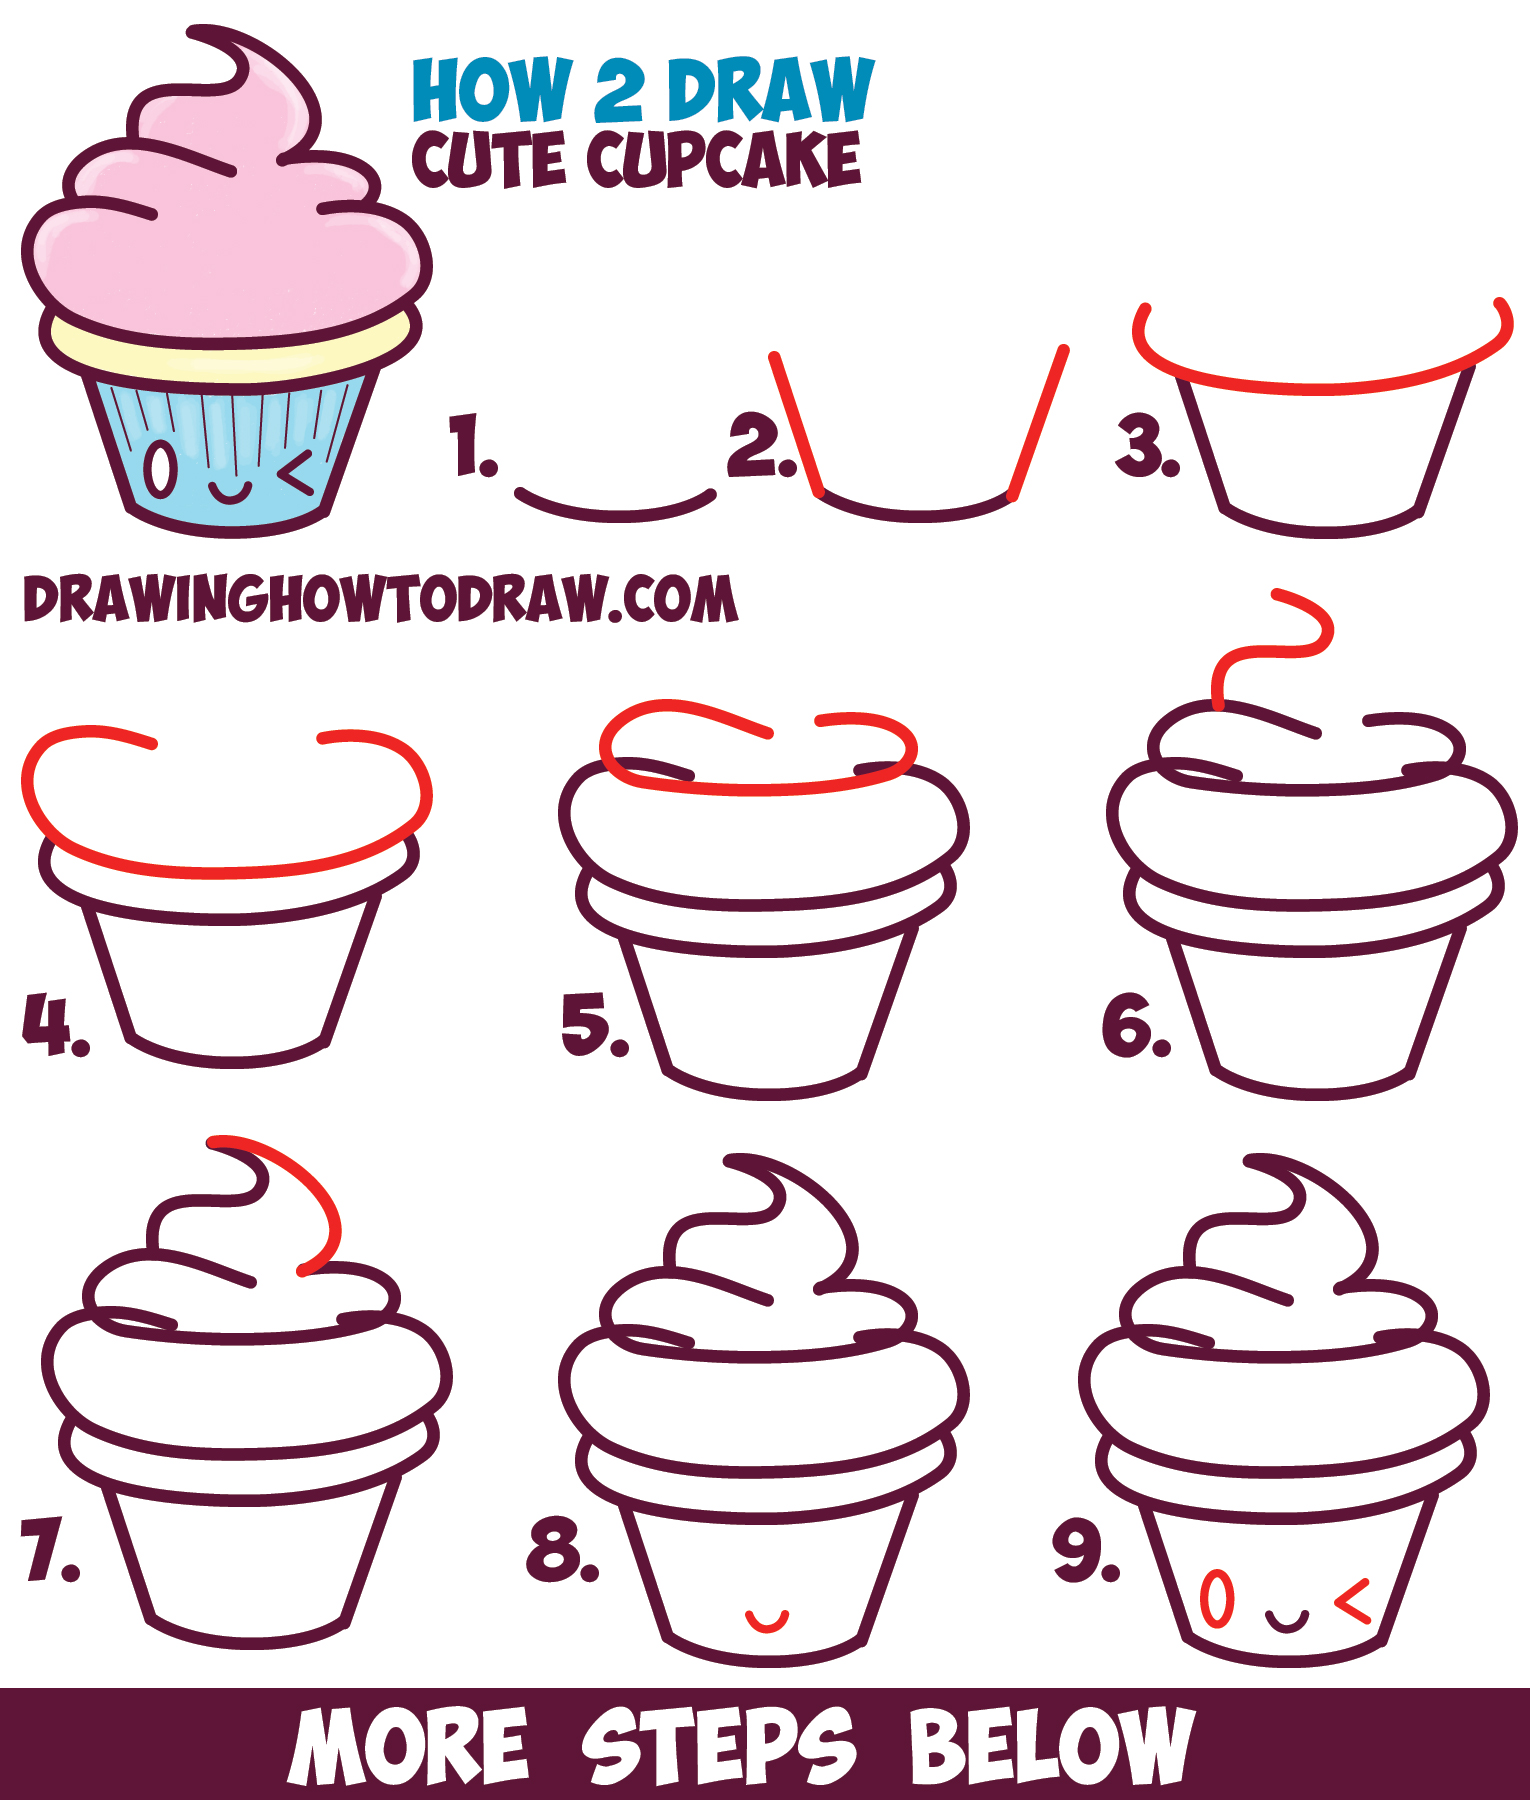 How to draw cute kawaii cupcake with face on it easy Teach me how to draw a flower